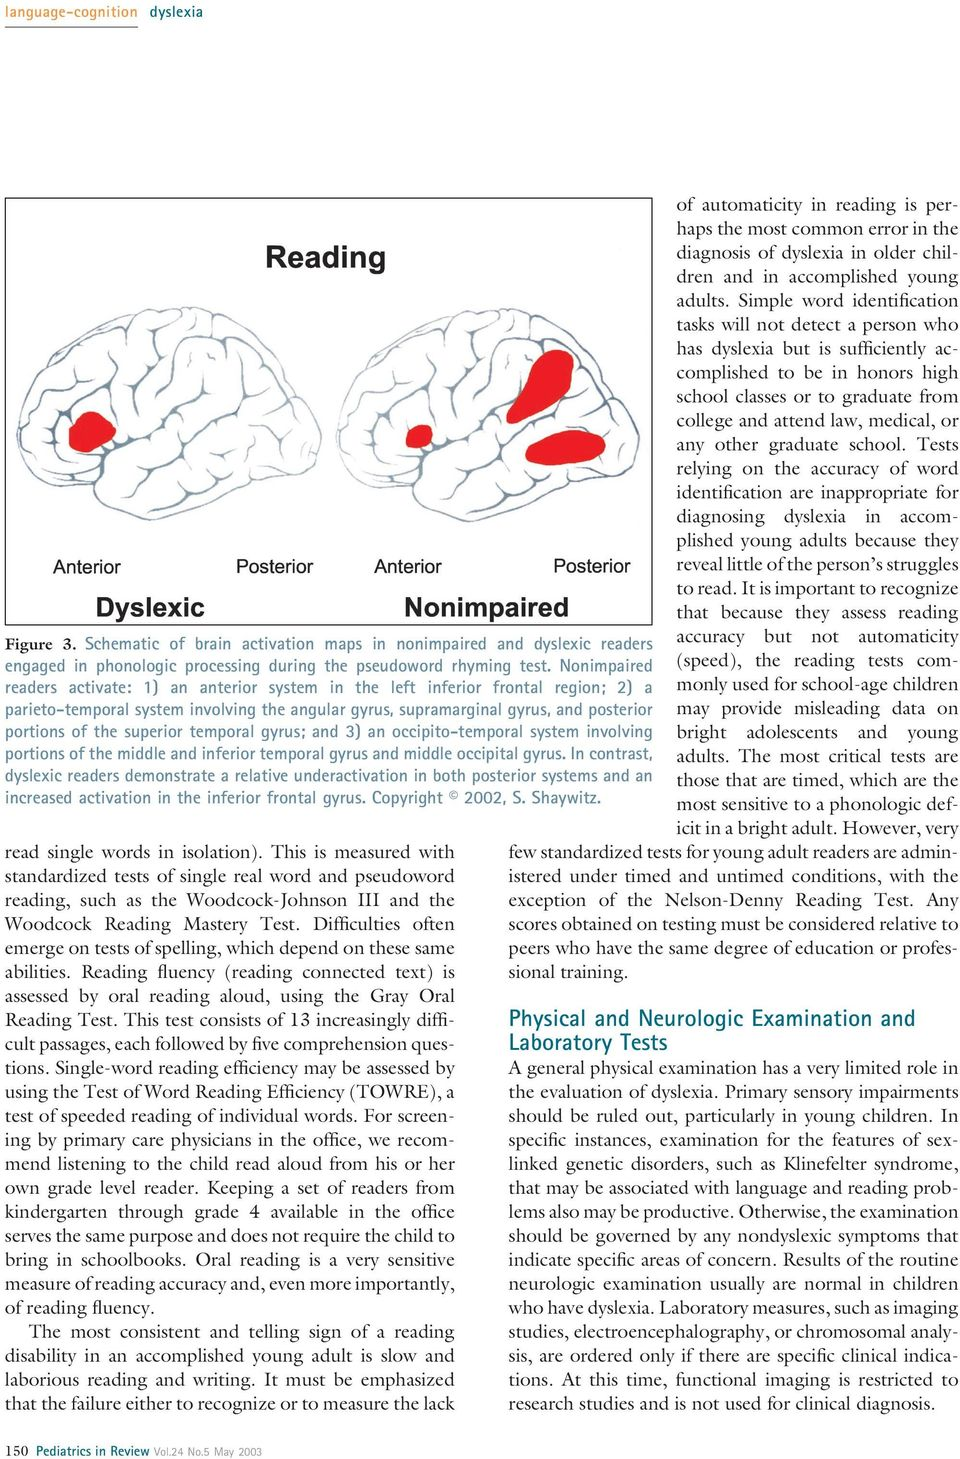 superior temporal gyrus; and 3) an occipito-temporal system involving portions of the middle and inferior temporal gyrus and middle occipital gyrus.